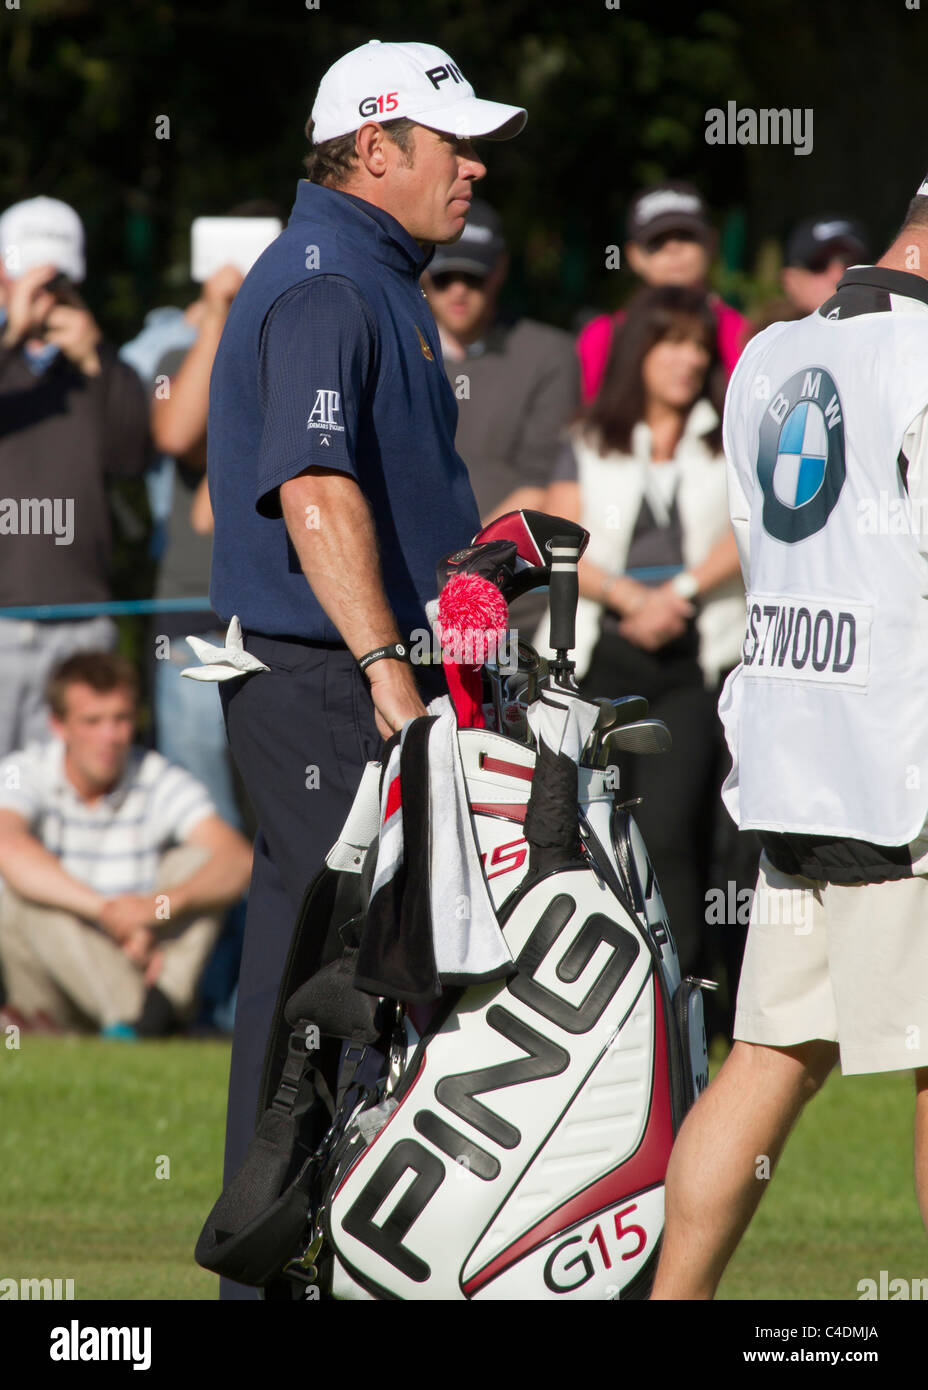 SURRY, ENGLAND - MAY 29: Lee Westwood plays through hole 18 during day four of the BMW PGA Championship on May 29, - Stock Image